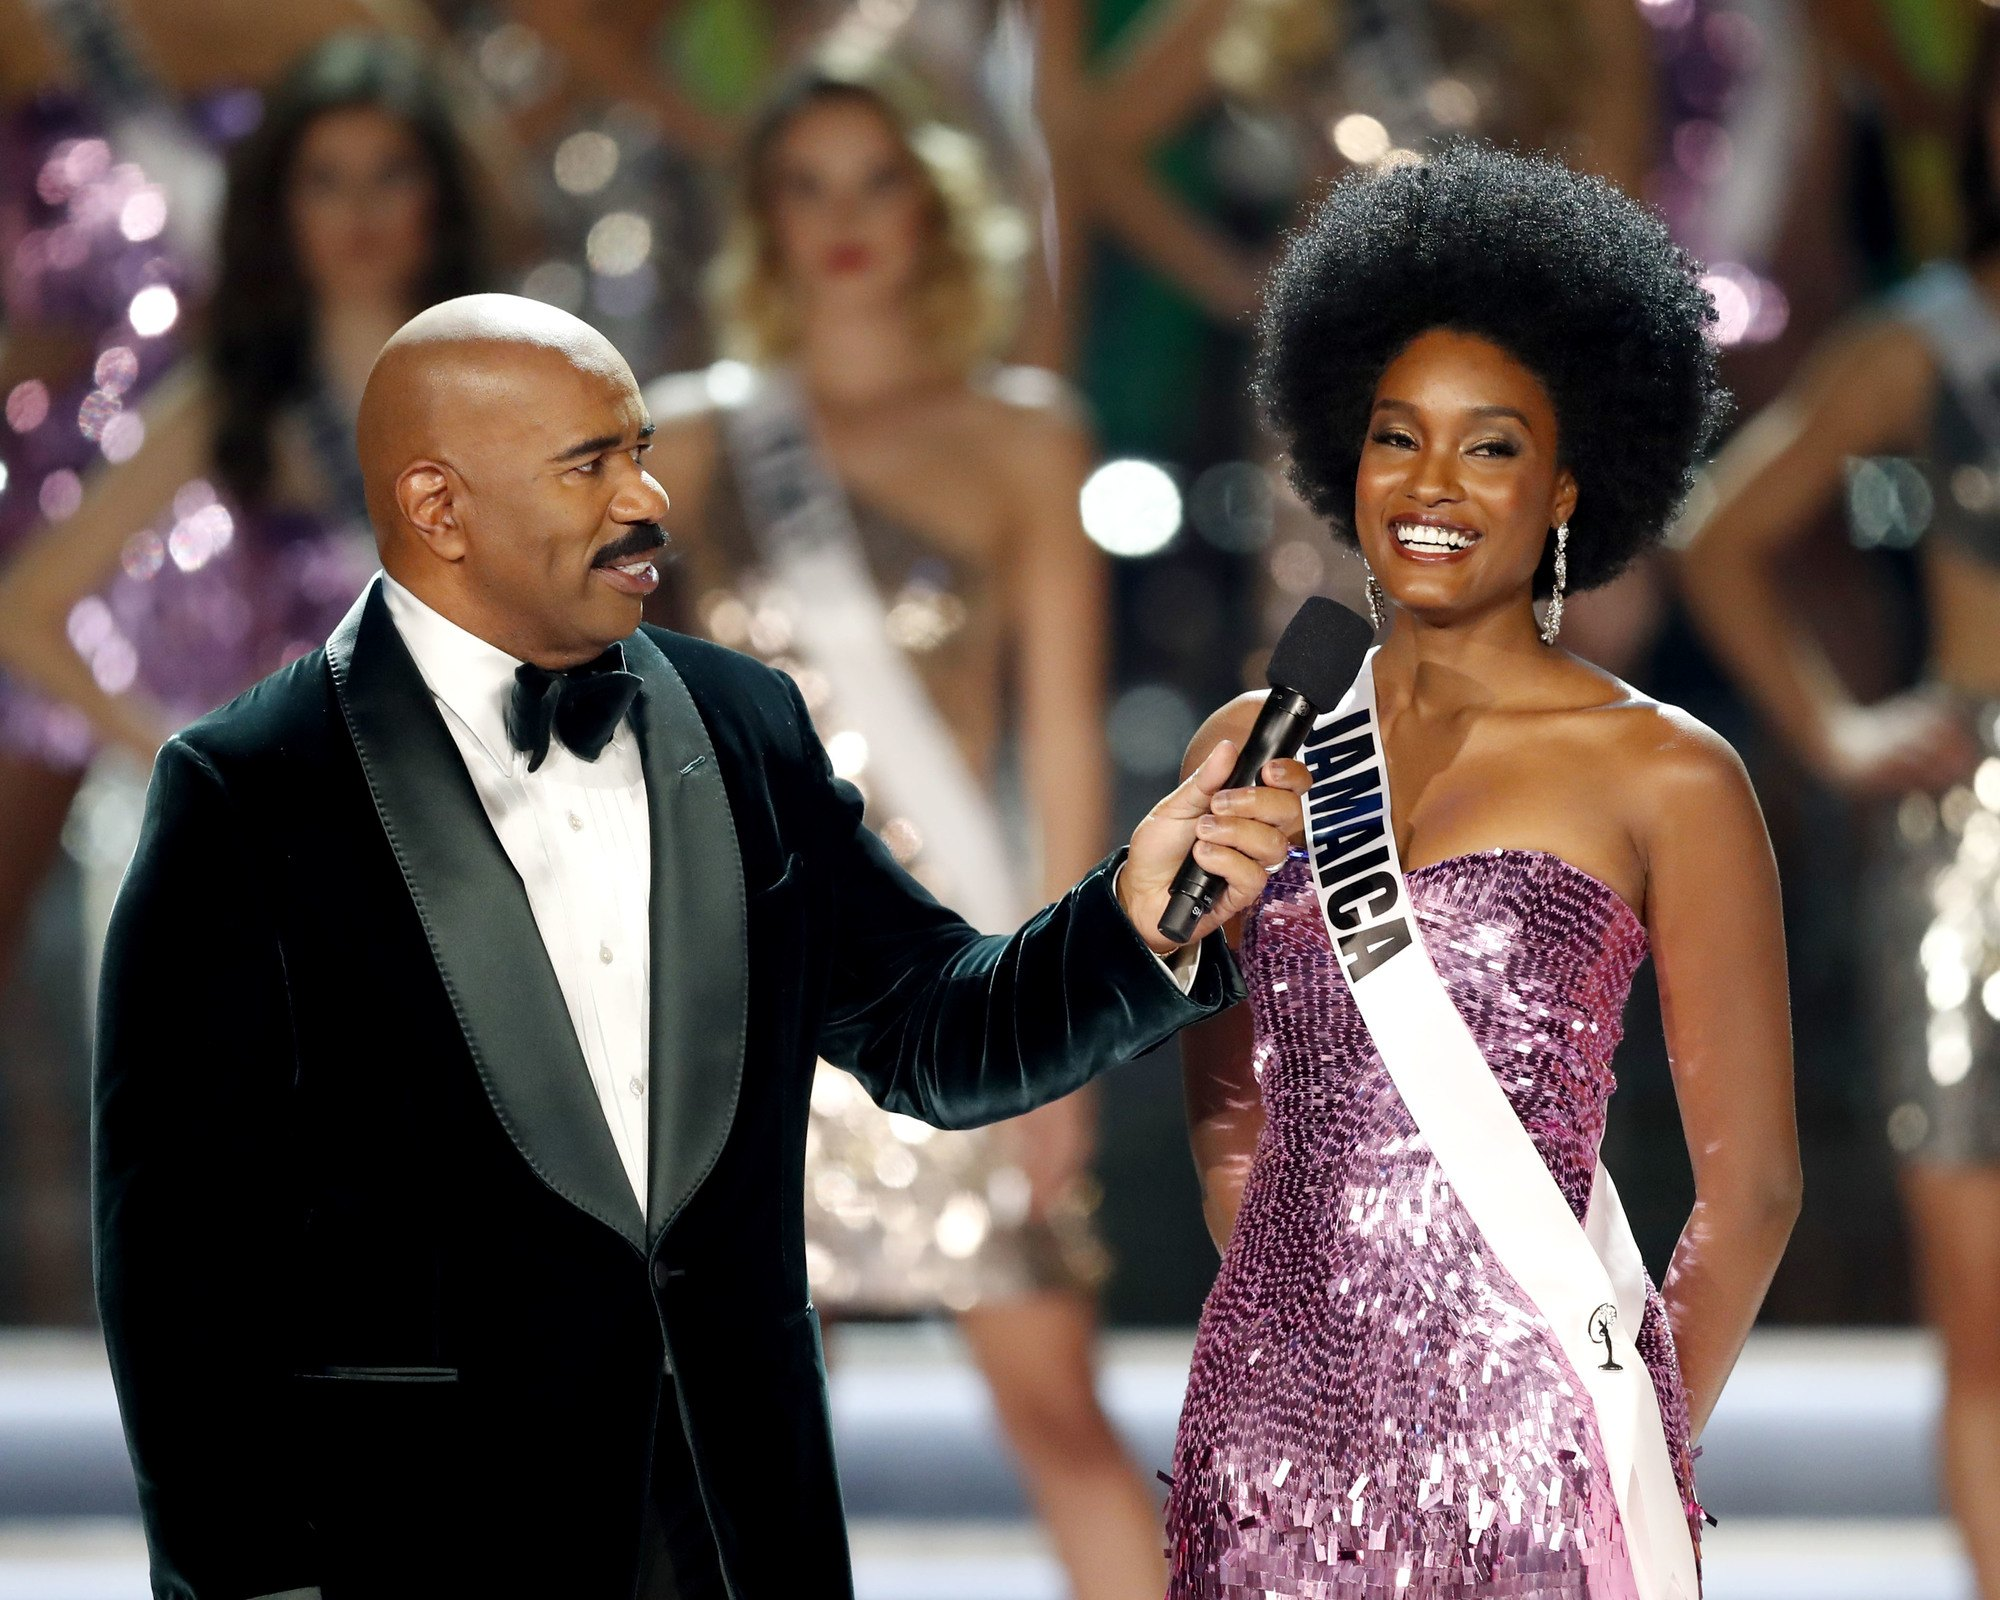 close up shot of miss jamaica's davina bennett on miss universe stage with her natural hair. wearing purple dress